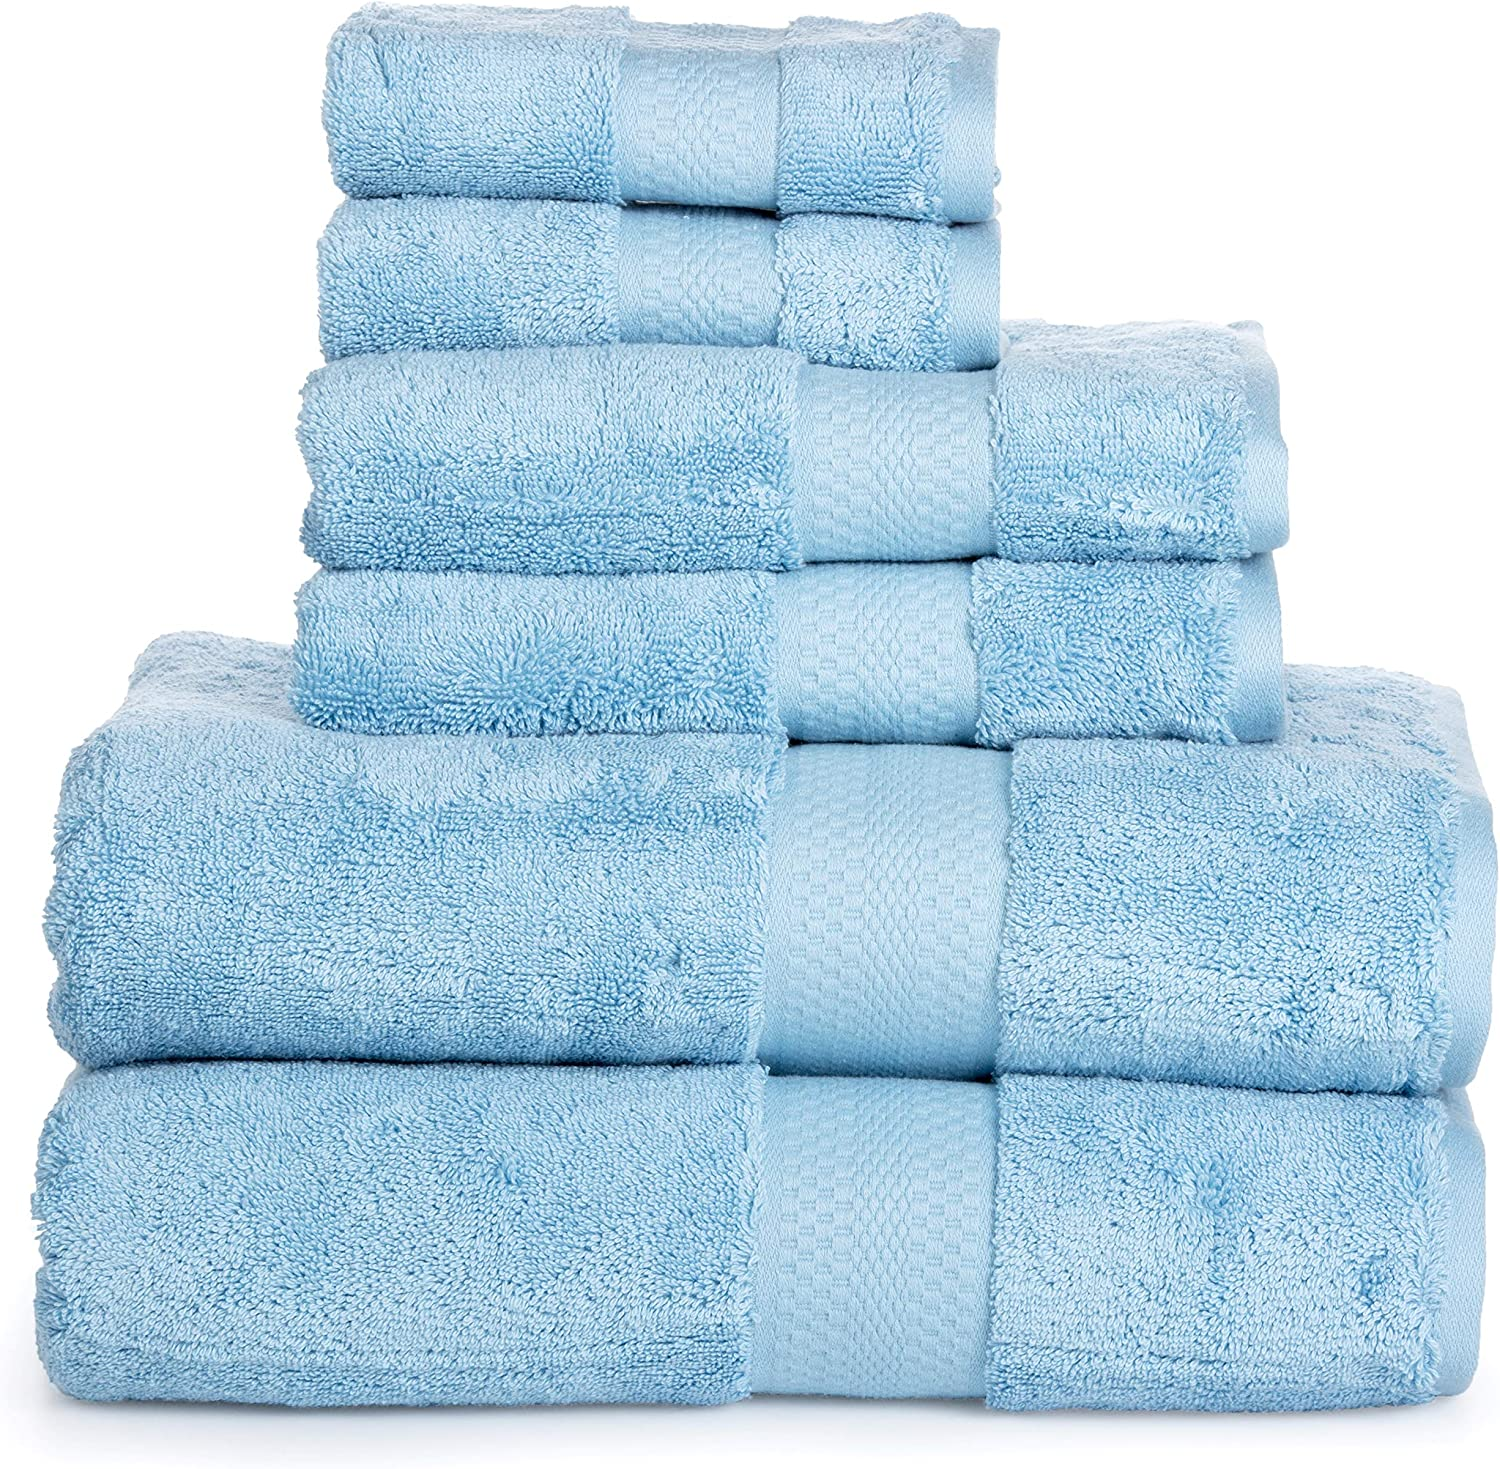 Luxury Cotton Bathroom Bath Towels  6 Piece Towel Set for Household Bathrooms - Soft Plush and Absorbent Cotton with Double Stitch Hems - Bath   Shower Towels, Hand Towels, and Washcloths - LIGHT blueE